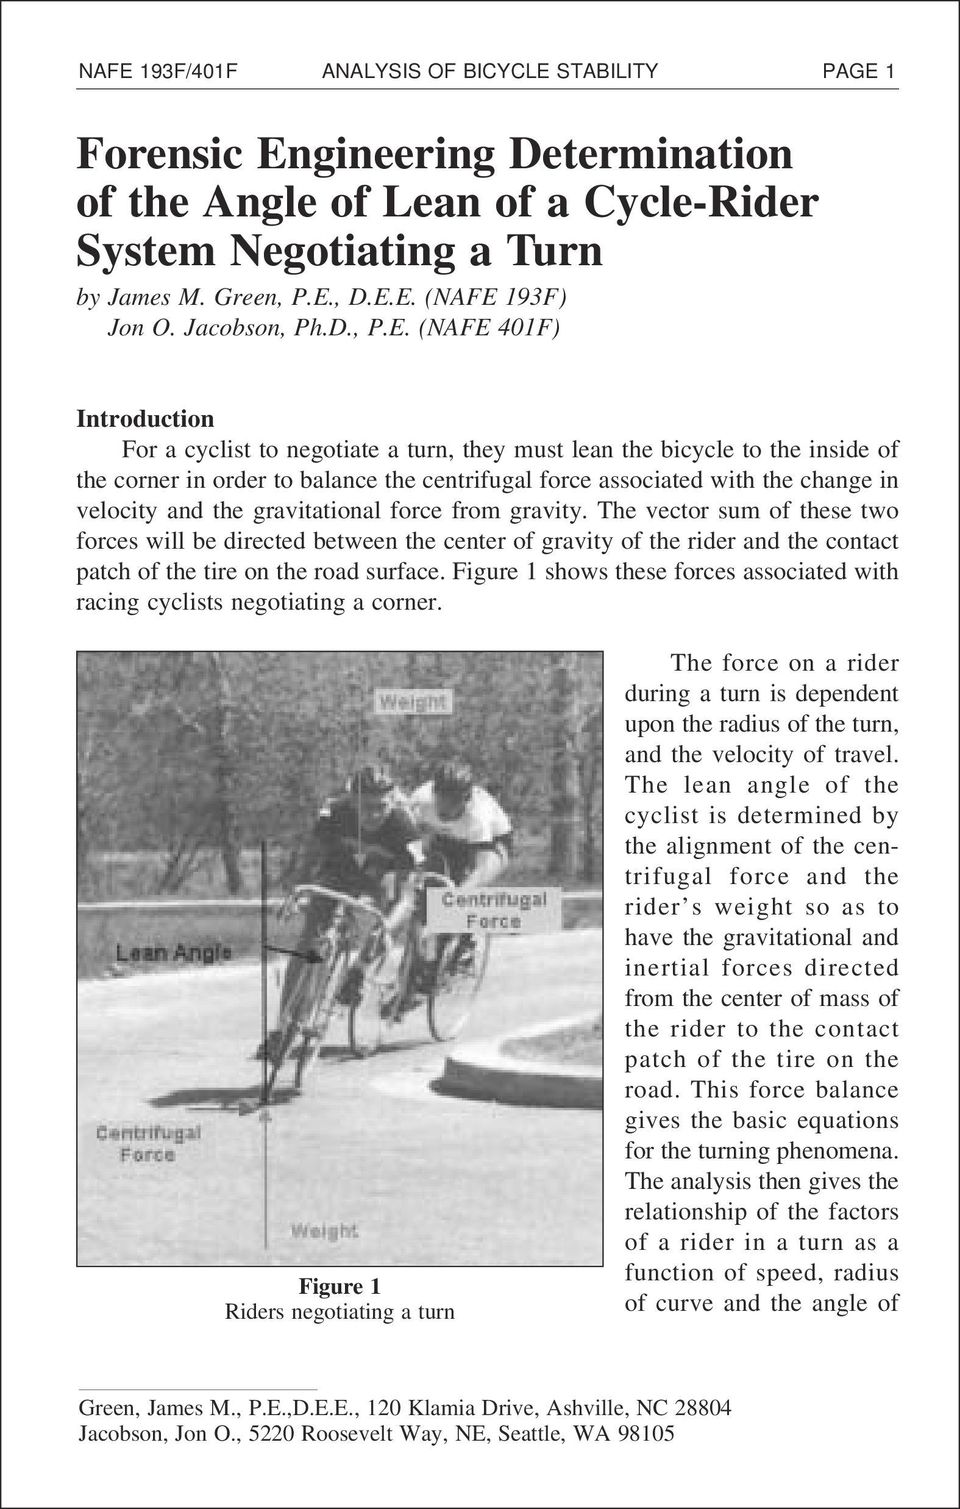 (NAFE 401F) Introduction For a cyclist to negotiate a turn, they must lean the bicycle to the inside of the corner in order to balance the centrifugal force associated with the change in velocity and